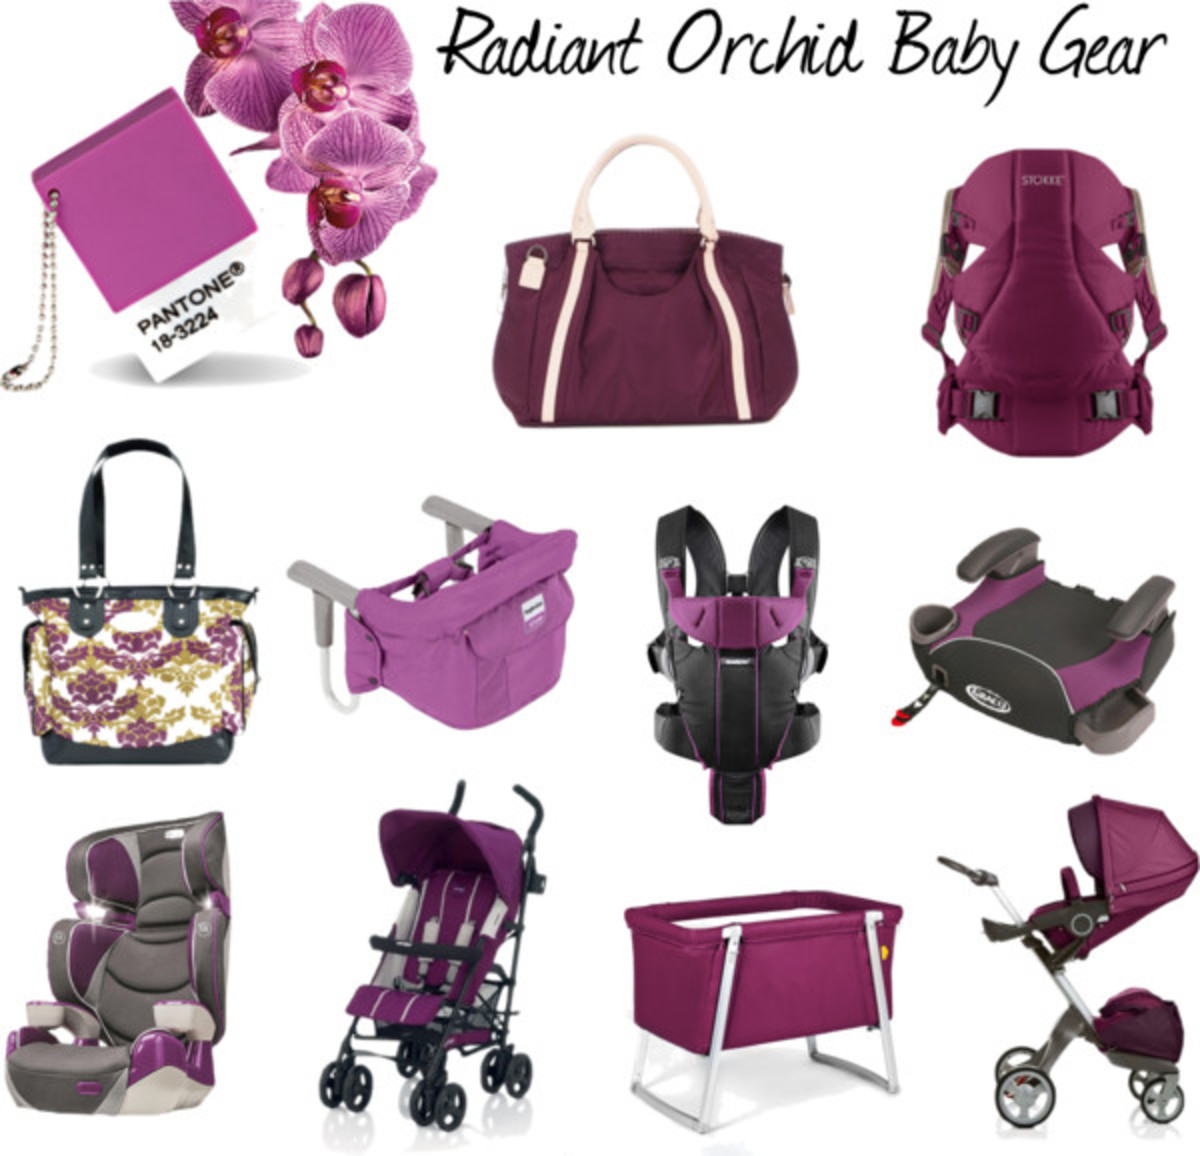 radiant orchid, color of the year